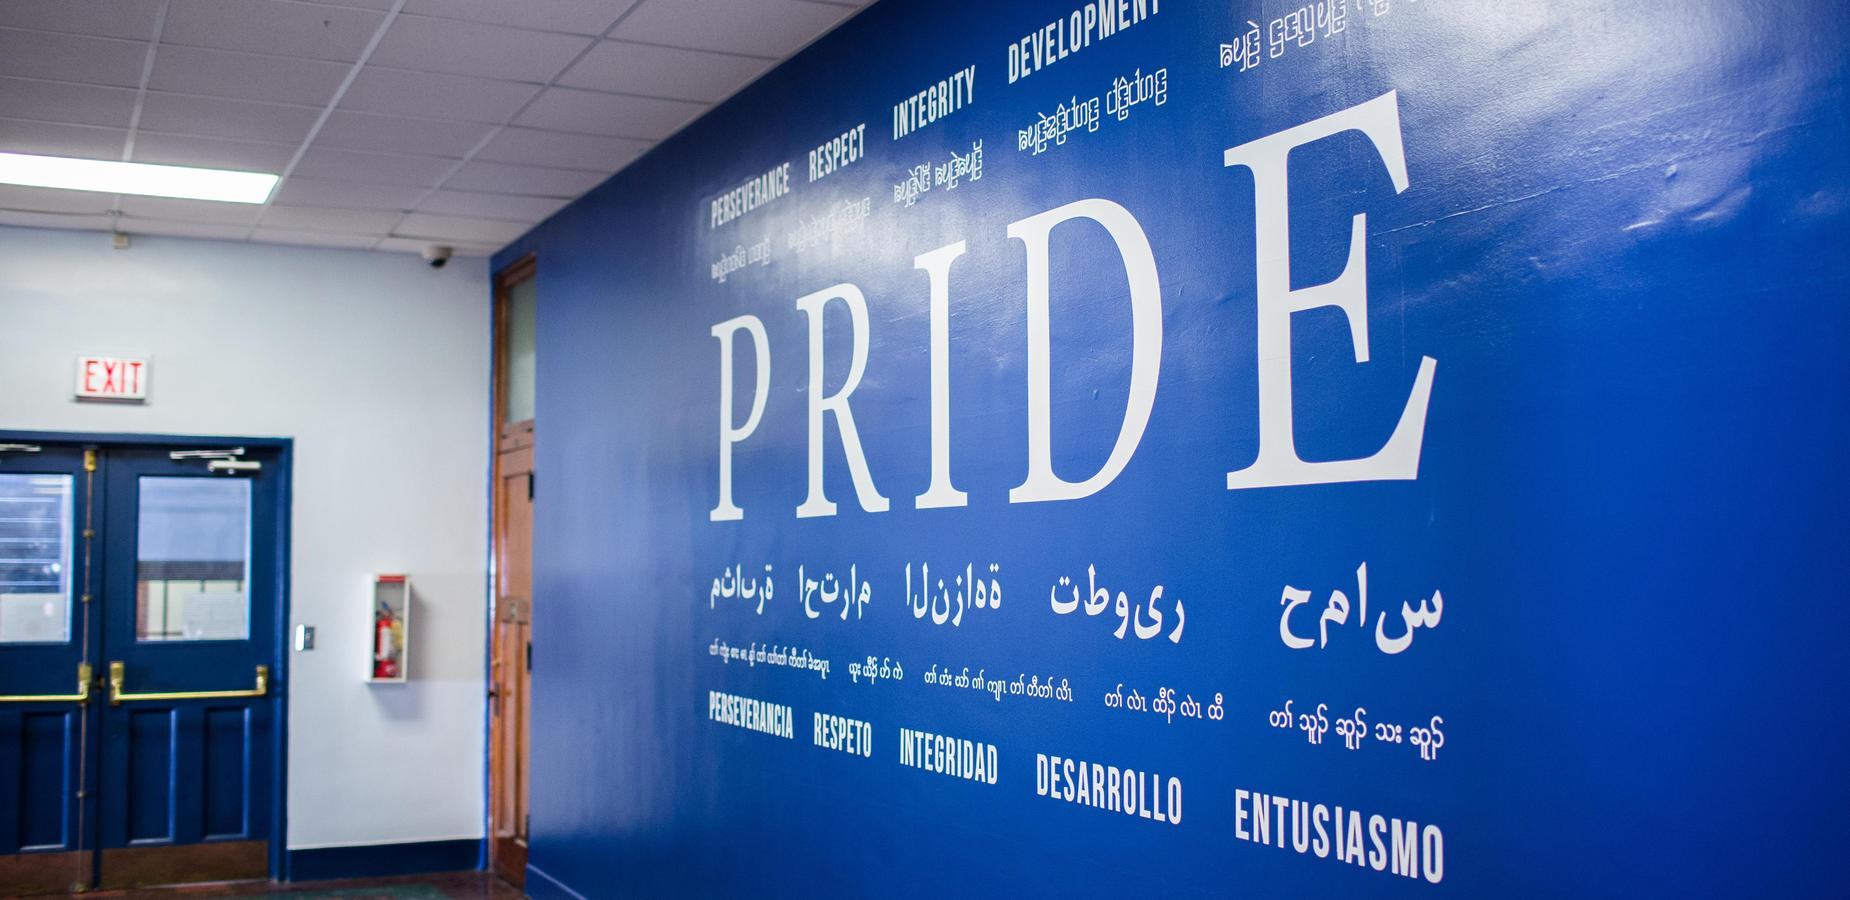 PRIDE wall at St. Paul campus